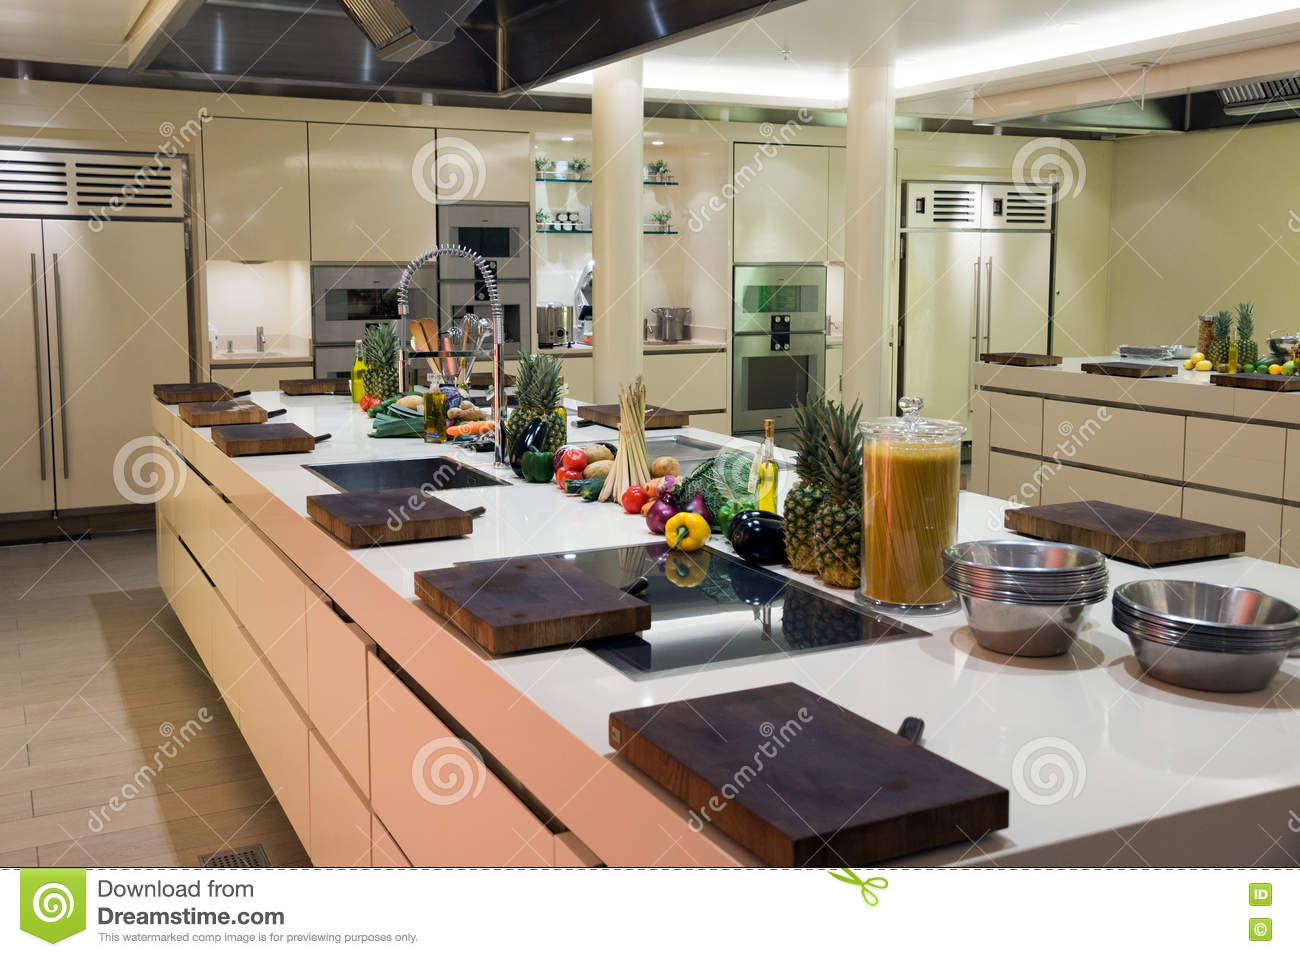 Modern Industrial Kitchen Stock Photo Image Of Counter